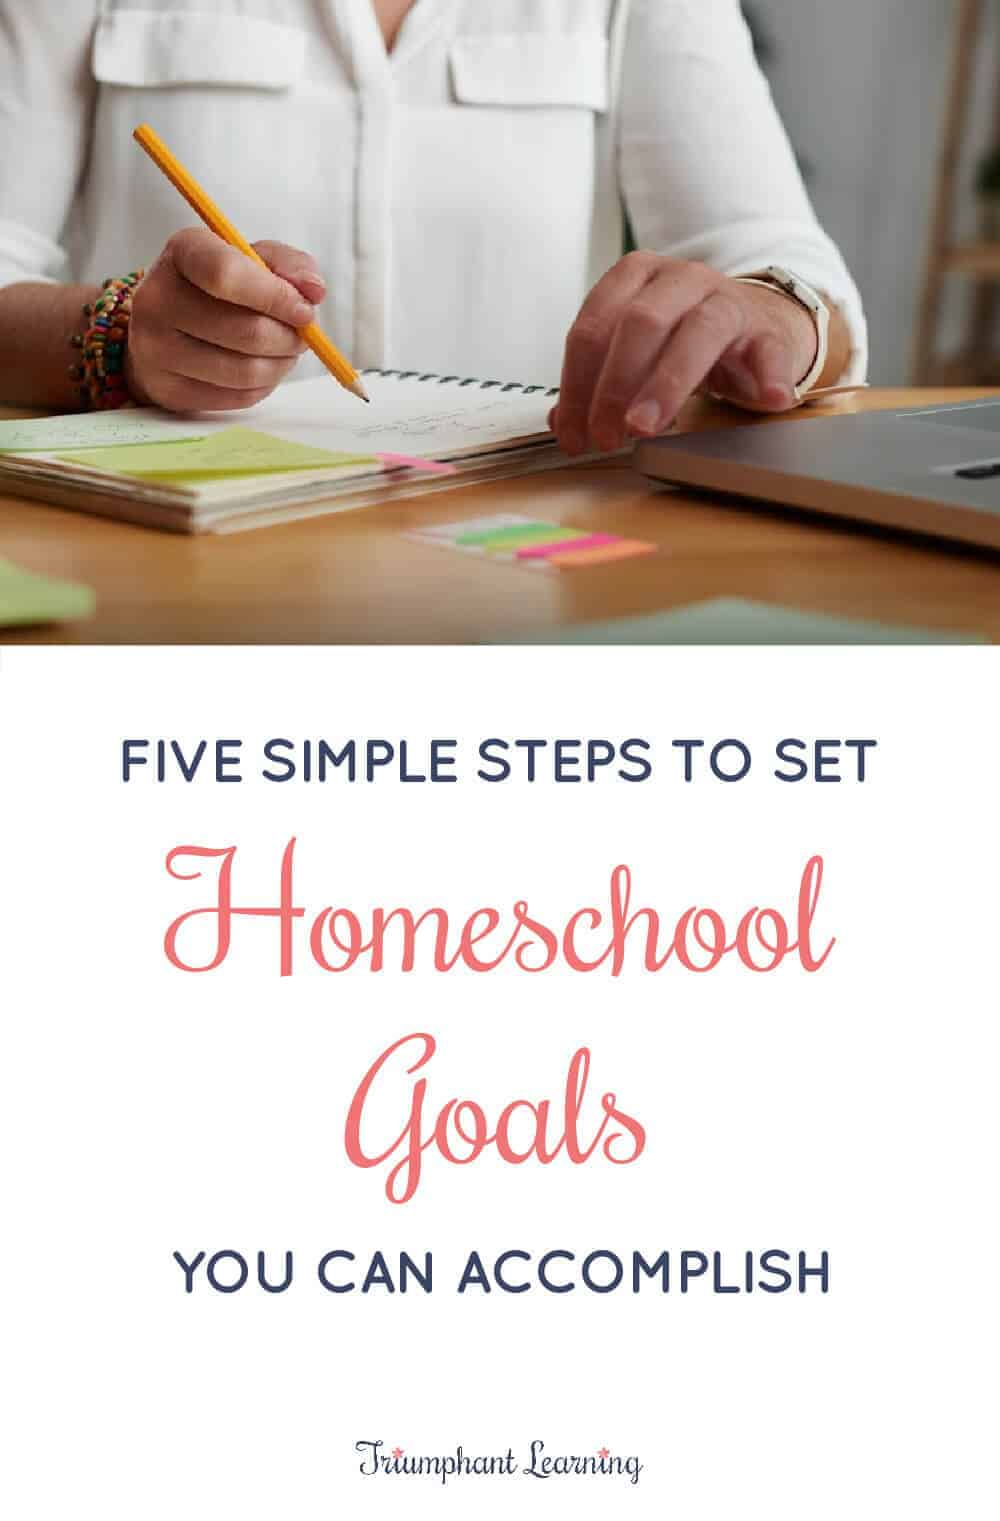 Learn the five simple steps to set homeschool goals, the types of goals you should include, and how you can evaluate your progress. via @TriLearning